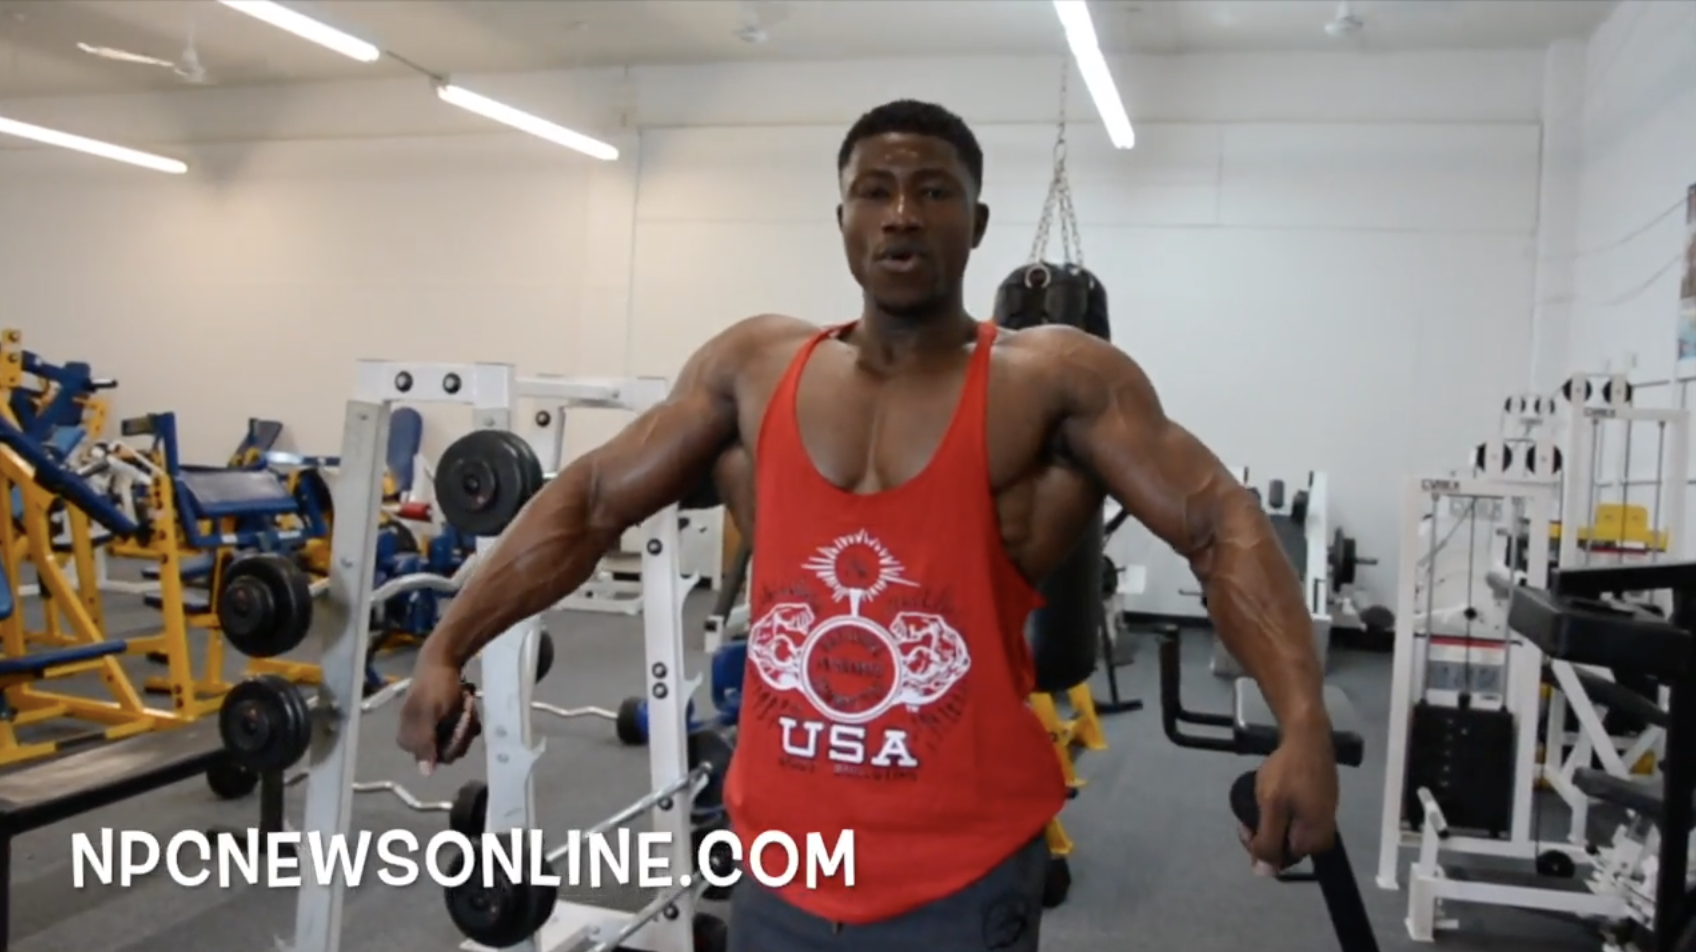 NPC Physique Athlete Mohamed Williams Posing Practice At The NPC Photo Gym